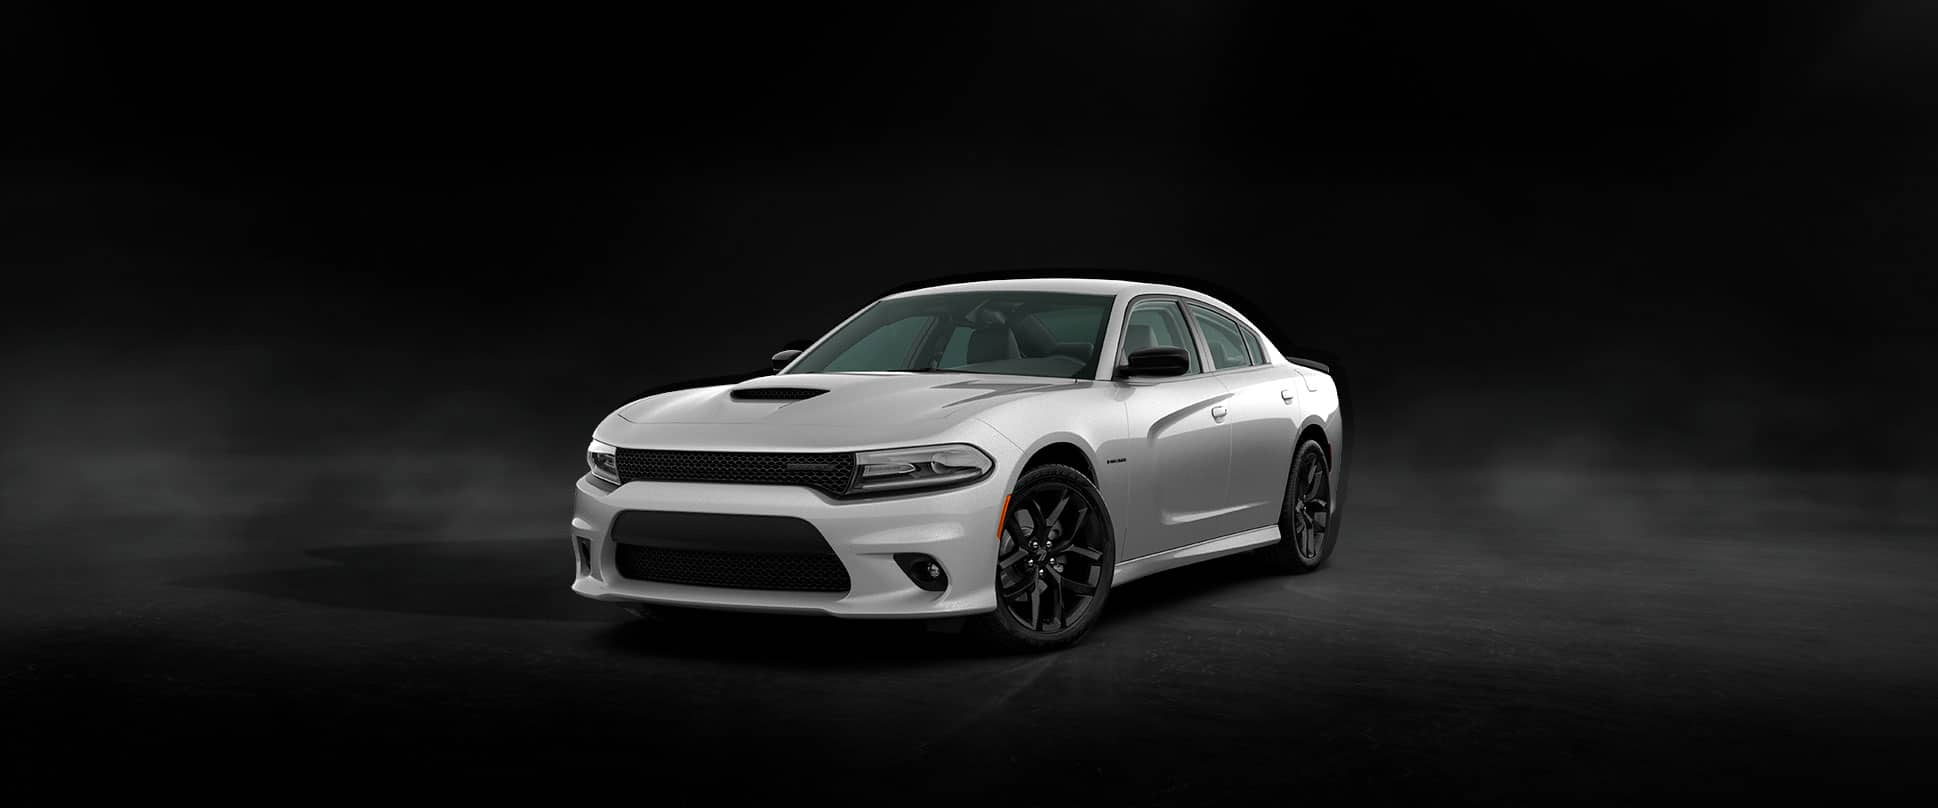 2020 Dodge Charger Packages Blacktop Daytona More